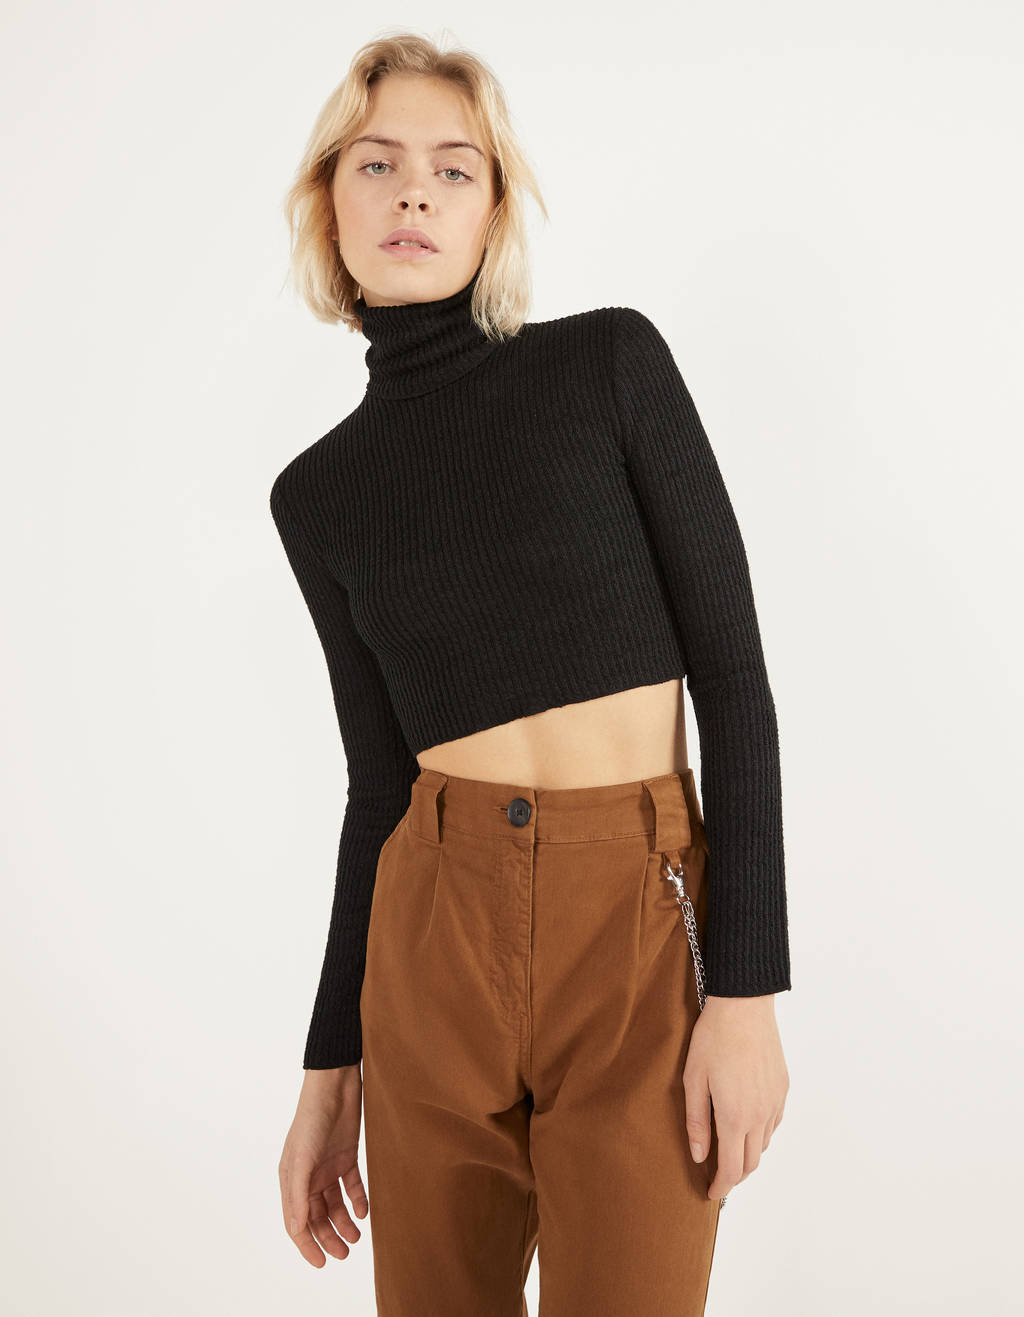 Cropped sweater with turtleneck